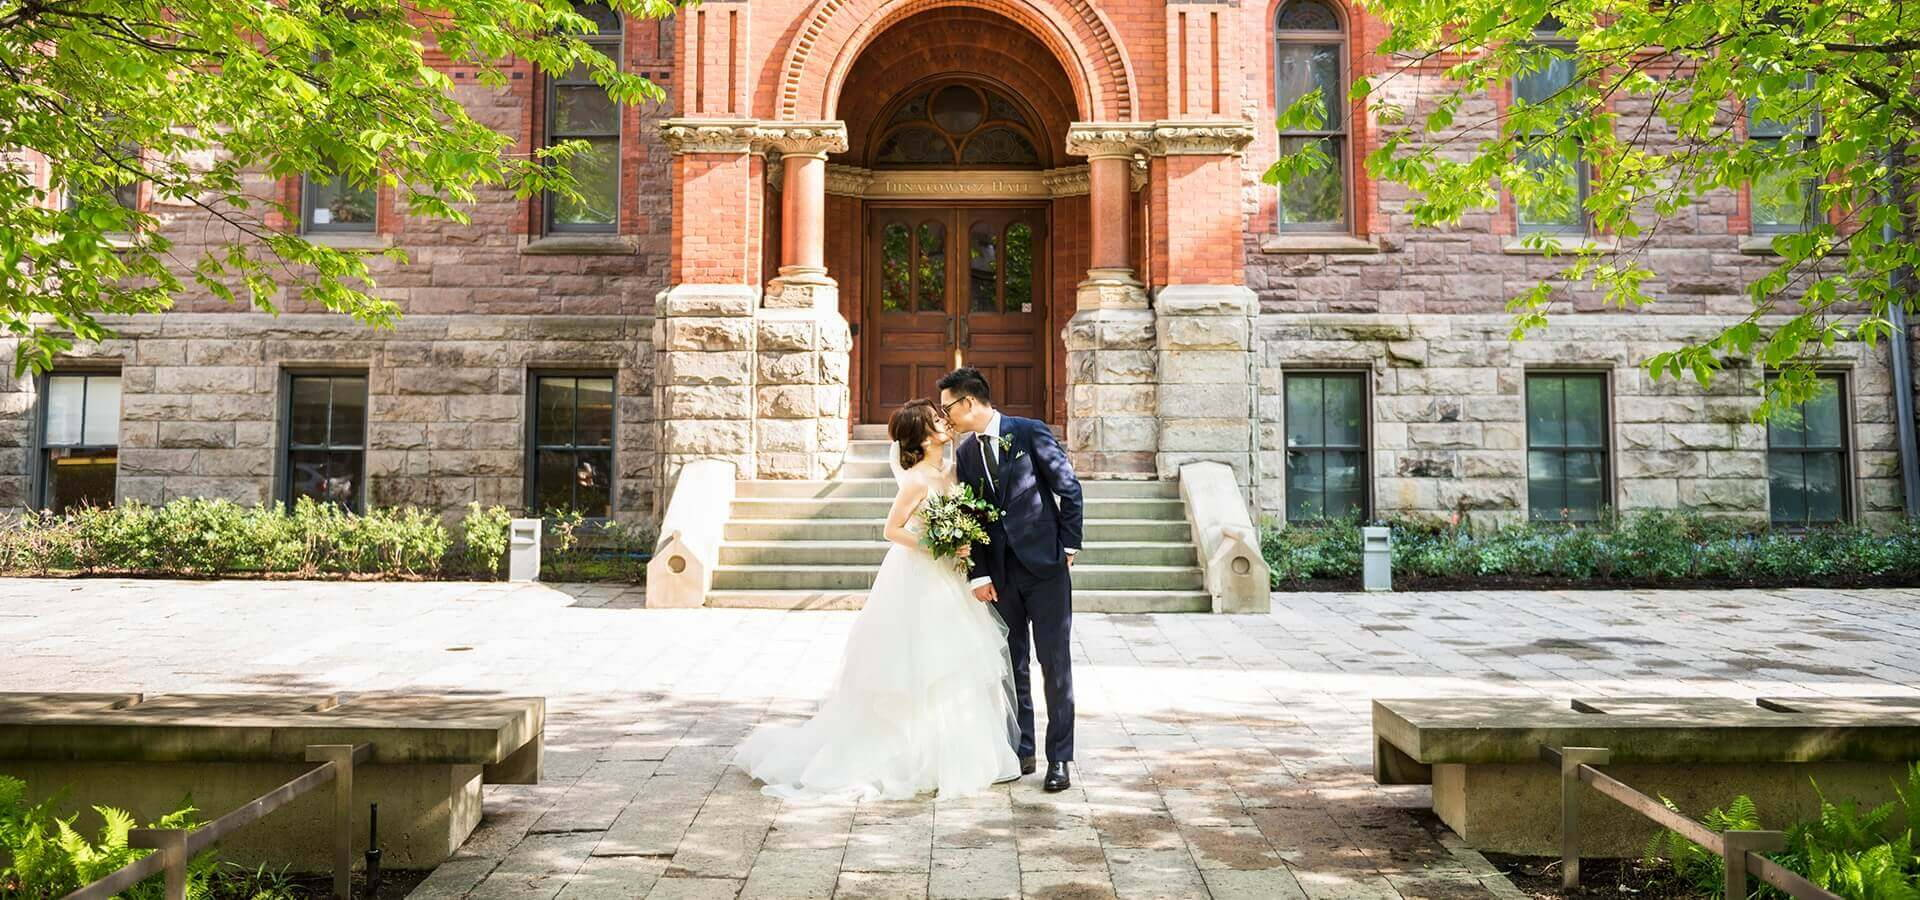 Hero image for Wei + Jim's Chic Wedding at the Royal Conservatory of Music